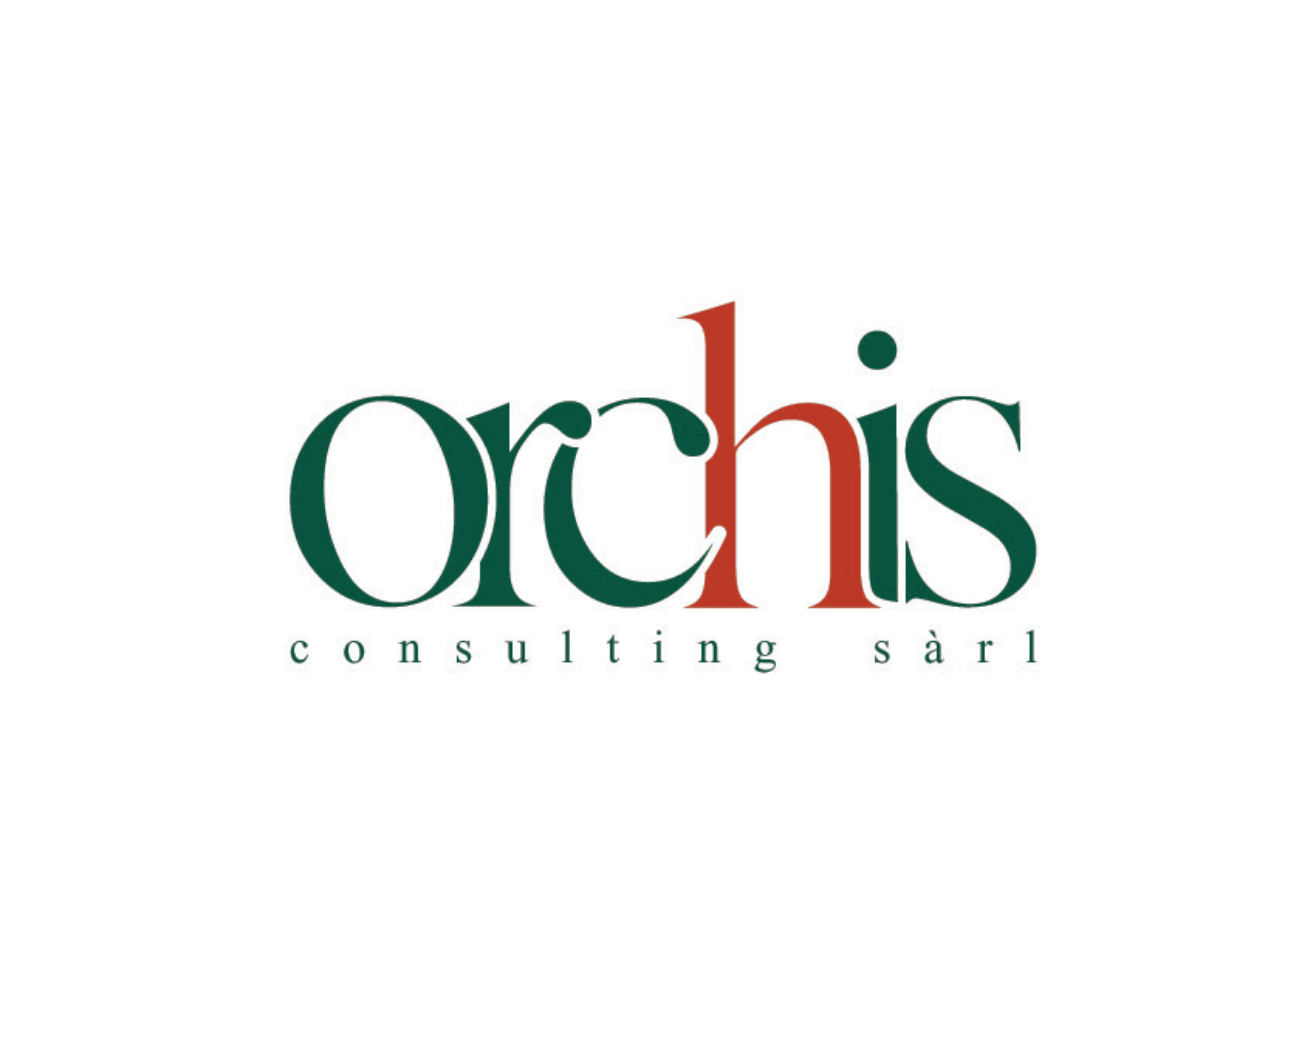 Orchis-consulting-sarl